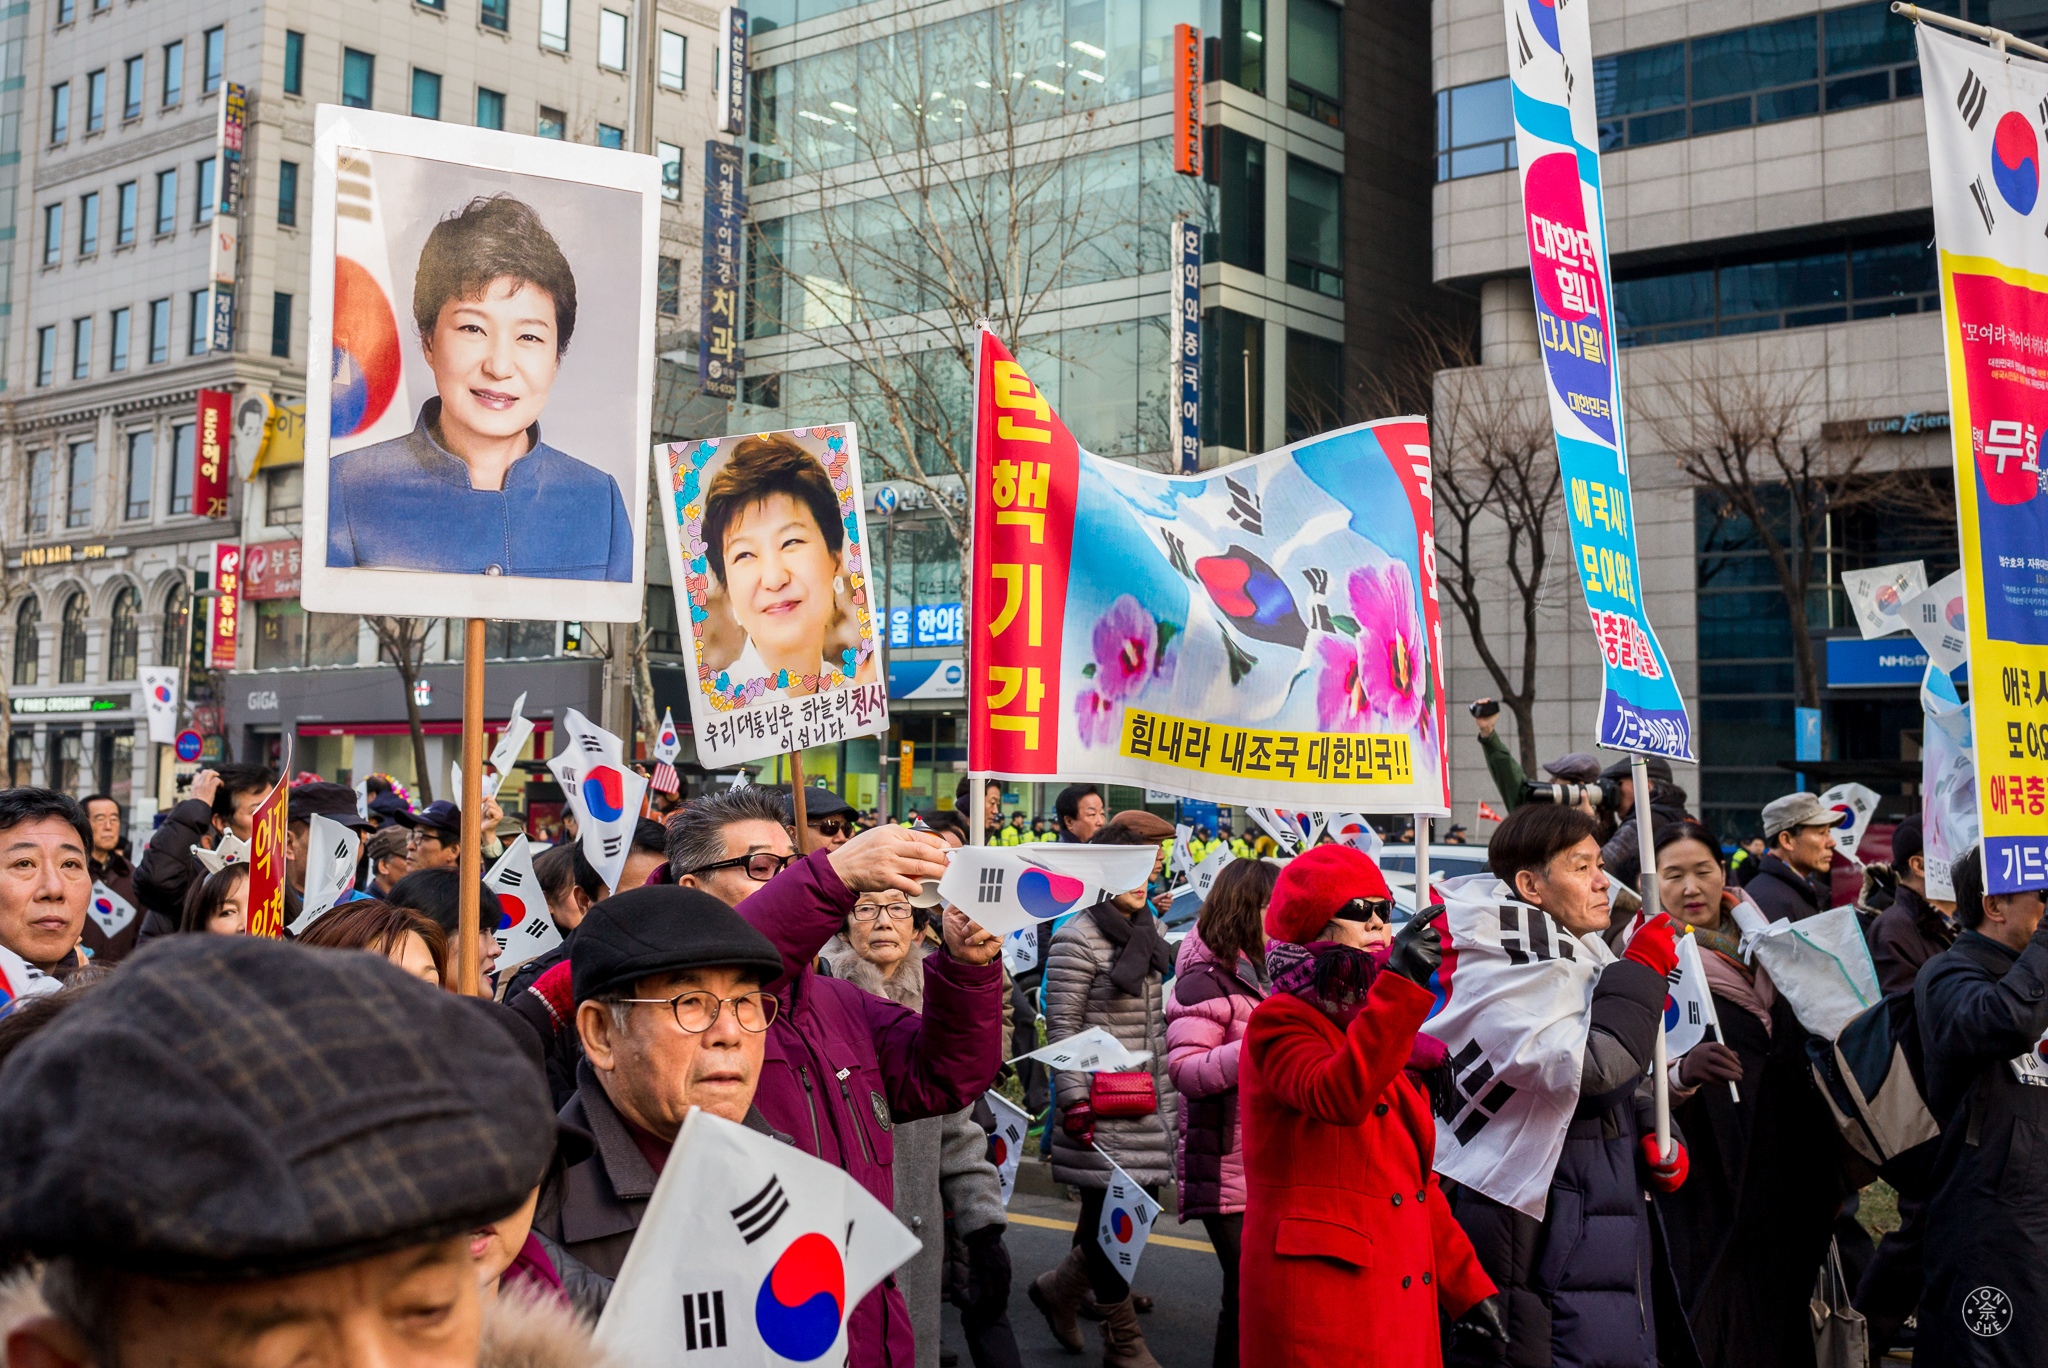 """""""The Lady in Question"""".  Tens of thousands of the republic's citizens marching in protest in Gangnam, the fashionable district of Seoul.There were demonstrators both for and against President Park Geun-hye to be ousted from office for her alleged role in the corruption scandal that had gripped Korea for several months. Seoul, South Korea.January 2017. © Jon She.Leica M-P (Typ 240), Leica Summilux-M 35mm f/1.4 ASPH (FLE)."""